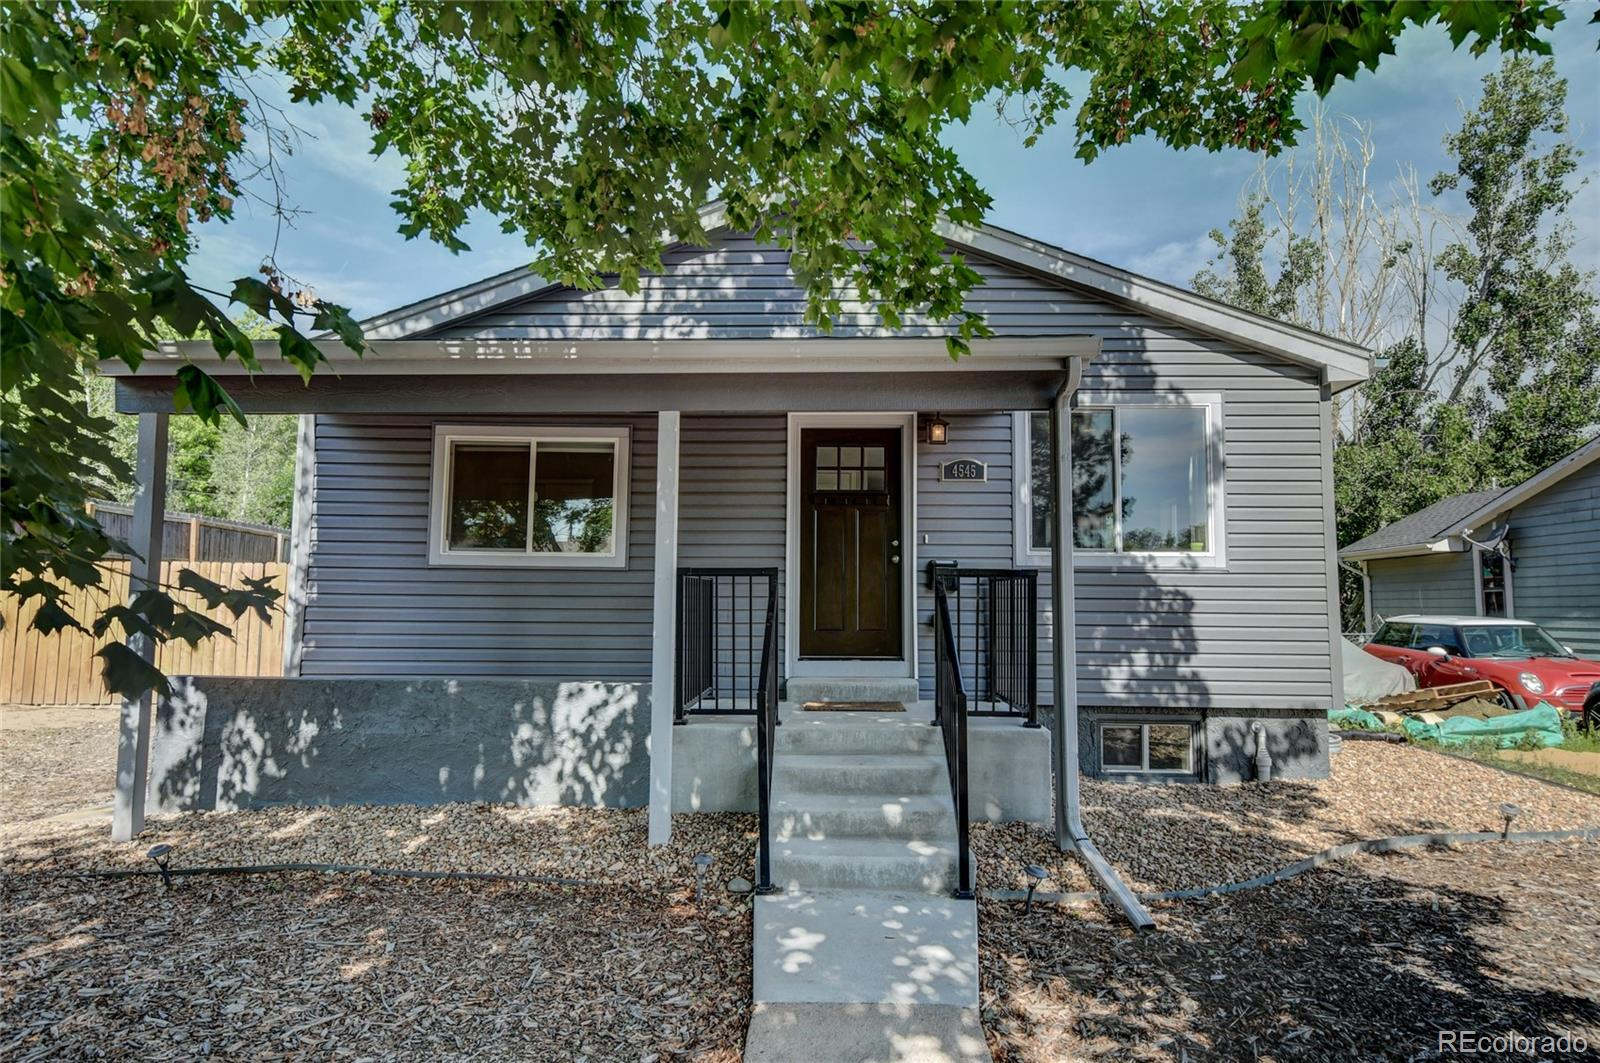 4545 S Delaware Street Property Photo - Englewood, CO real estate listing